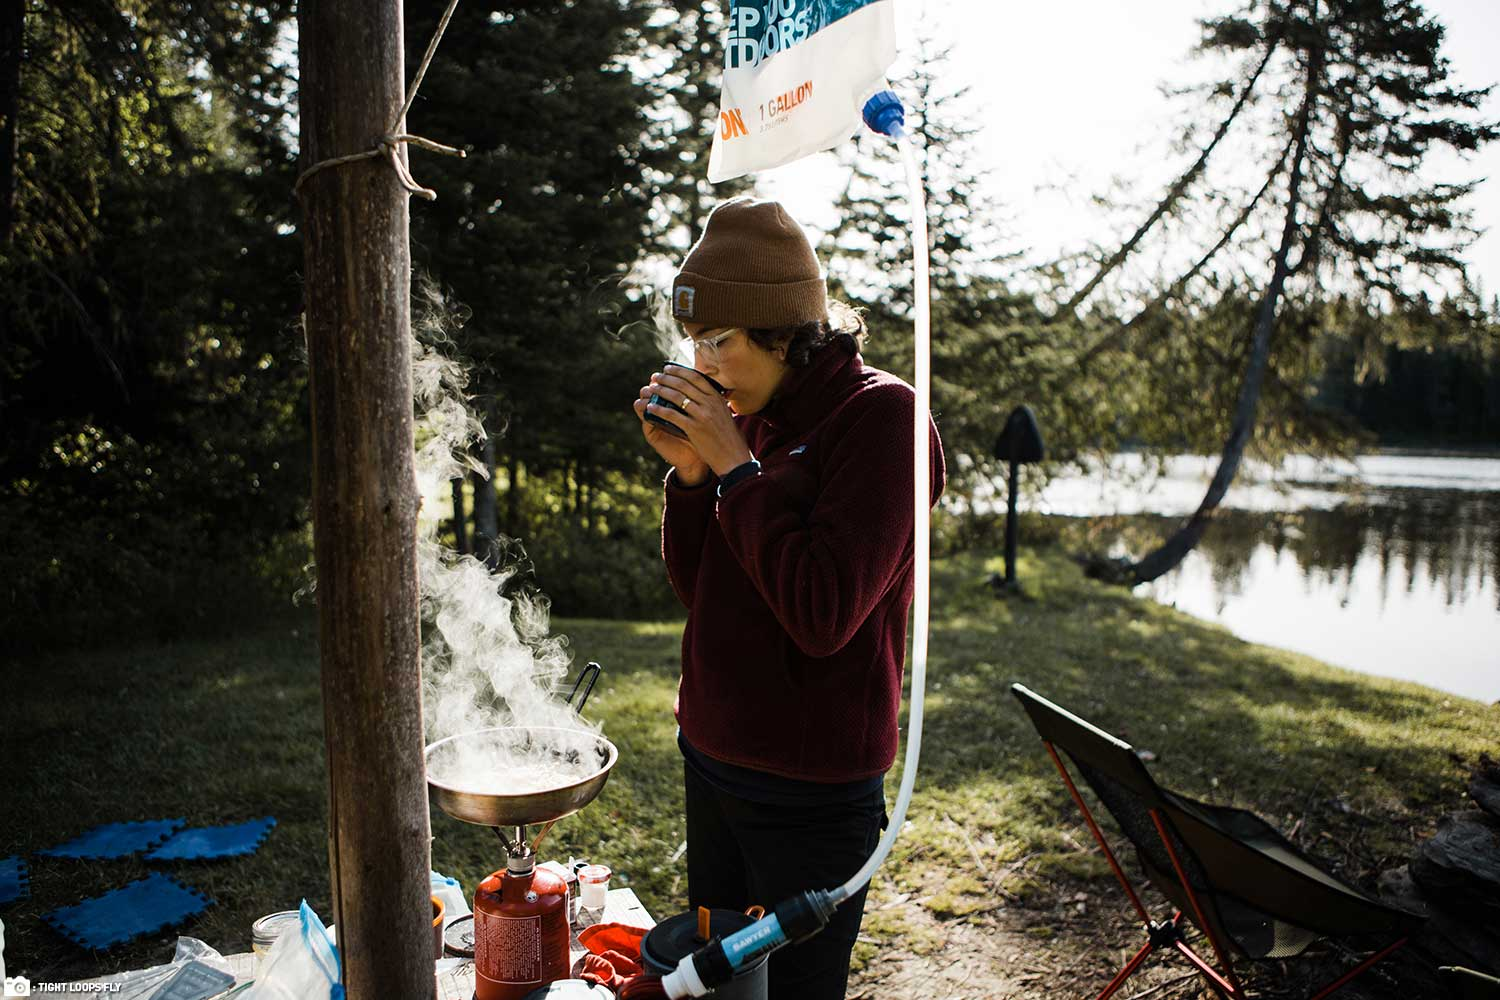 A Sawyer Gravity Filtration System Hanging at Fishing Camp While a Woman Sips Coffee